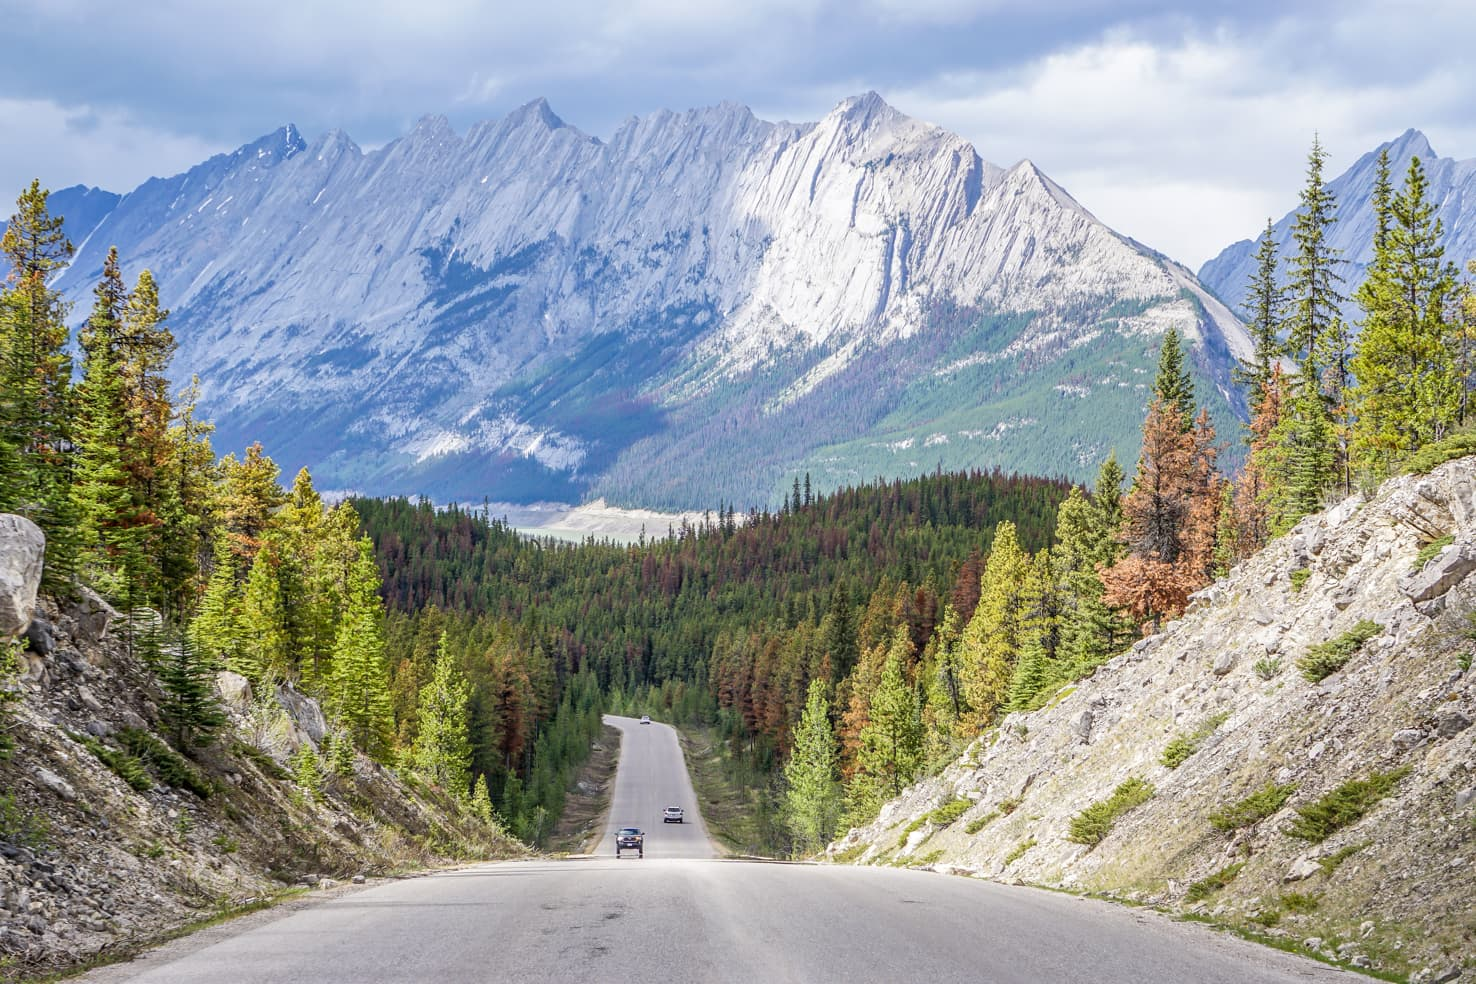 Things to do in Jasper National Park - 53 Learn to take breathtaking photos